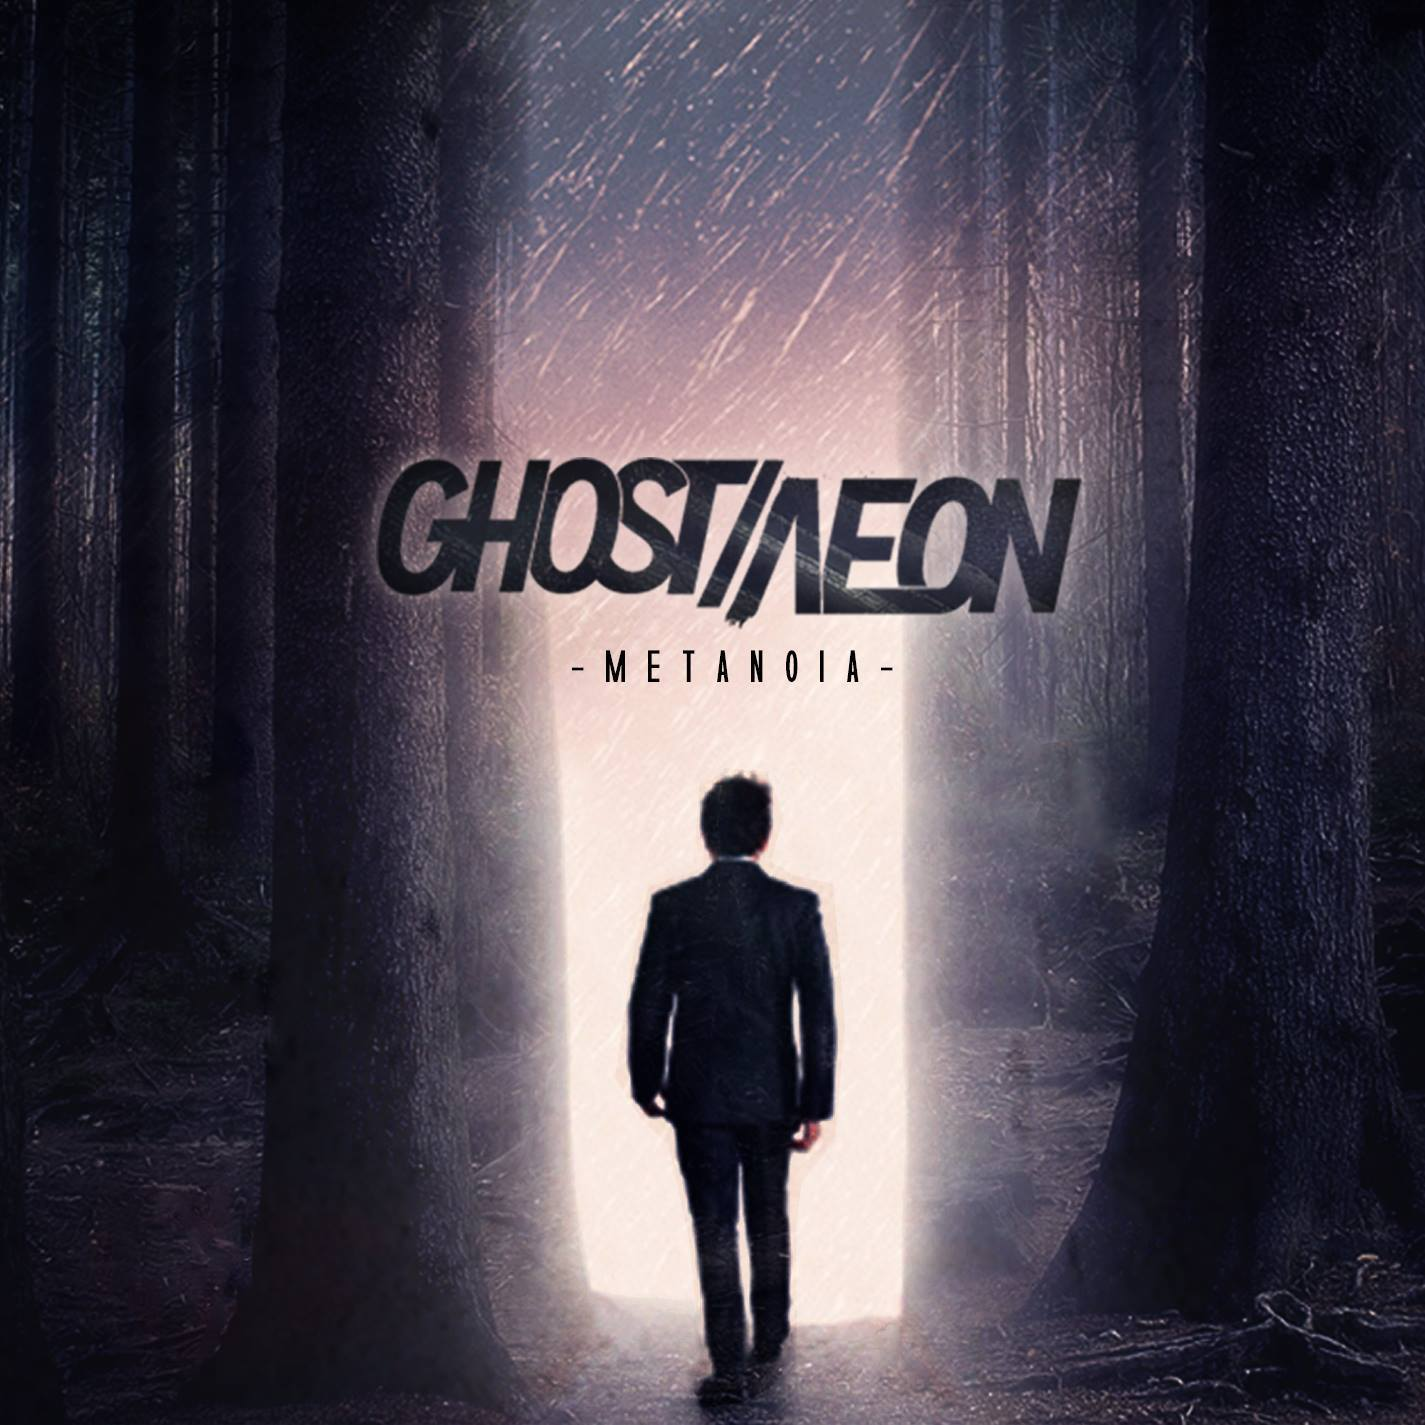 Ghost/Aeon - Metanoia (2016)